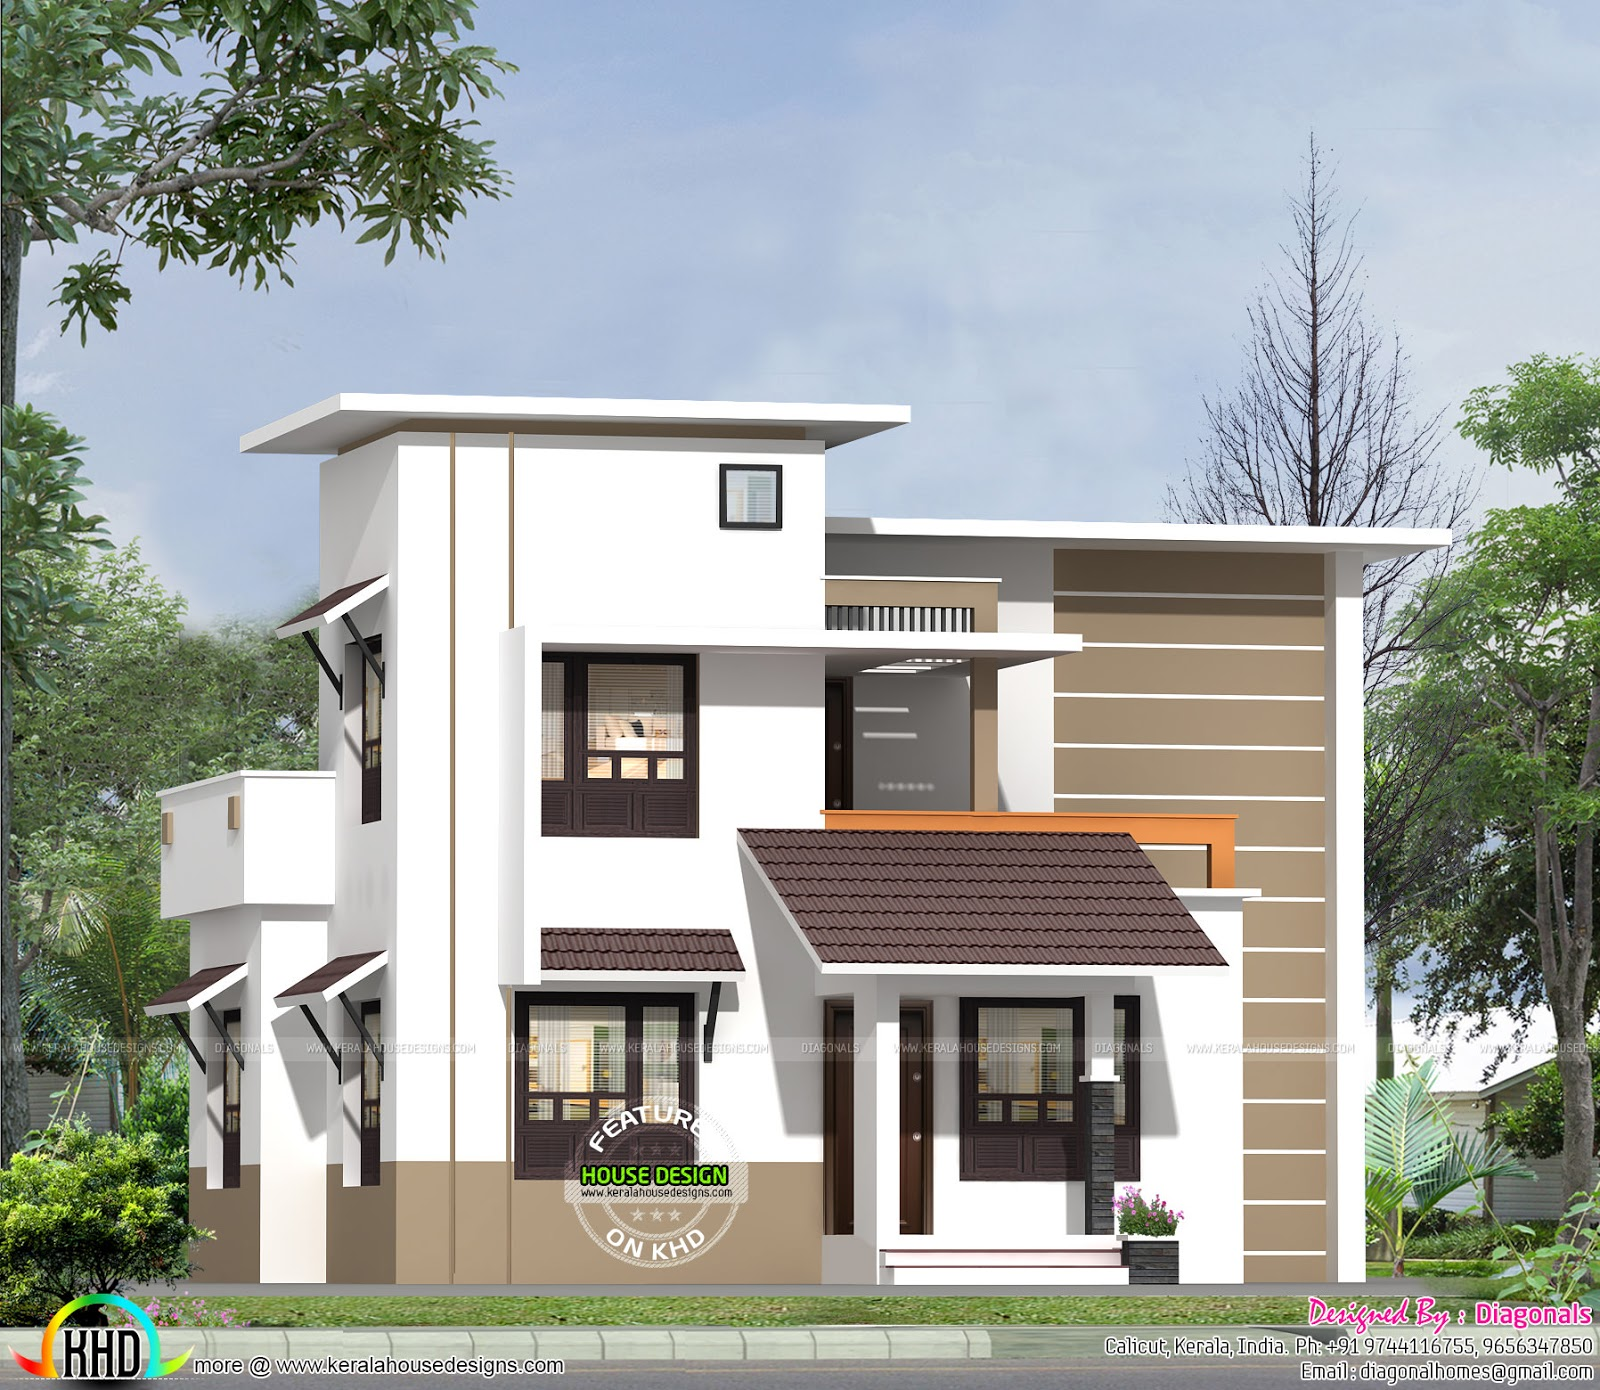 Affordable low cost home kerala home design and floor plans for Kerala home designs low cost